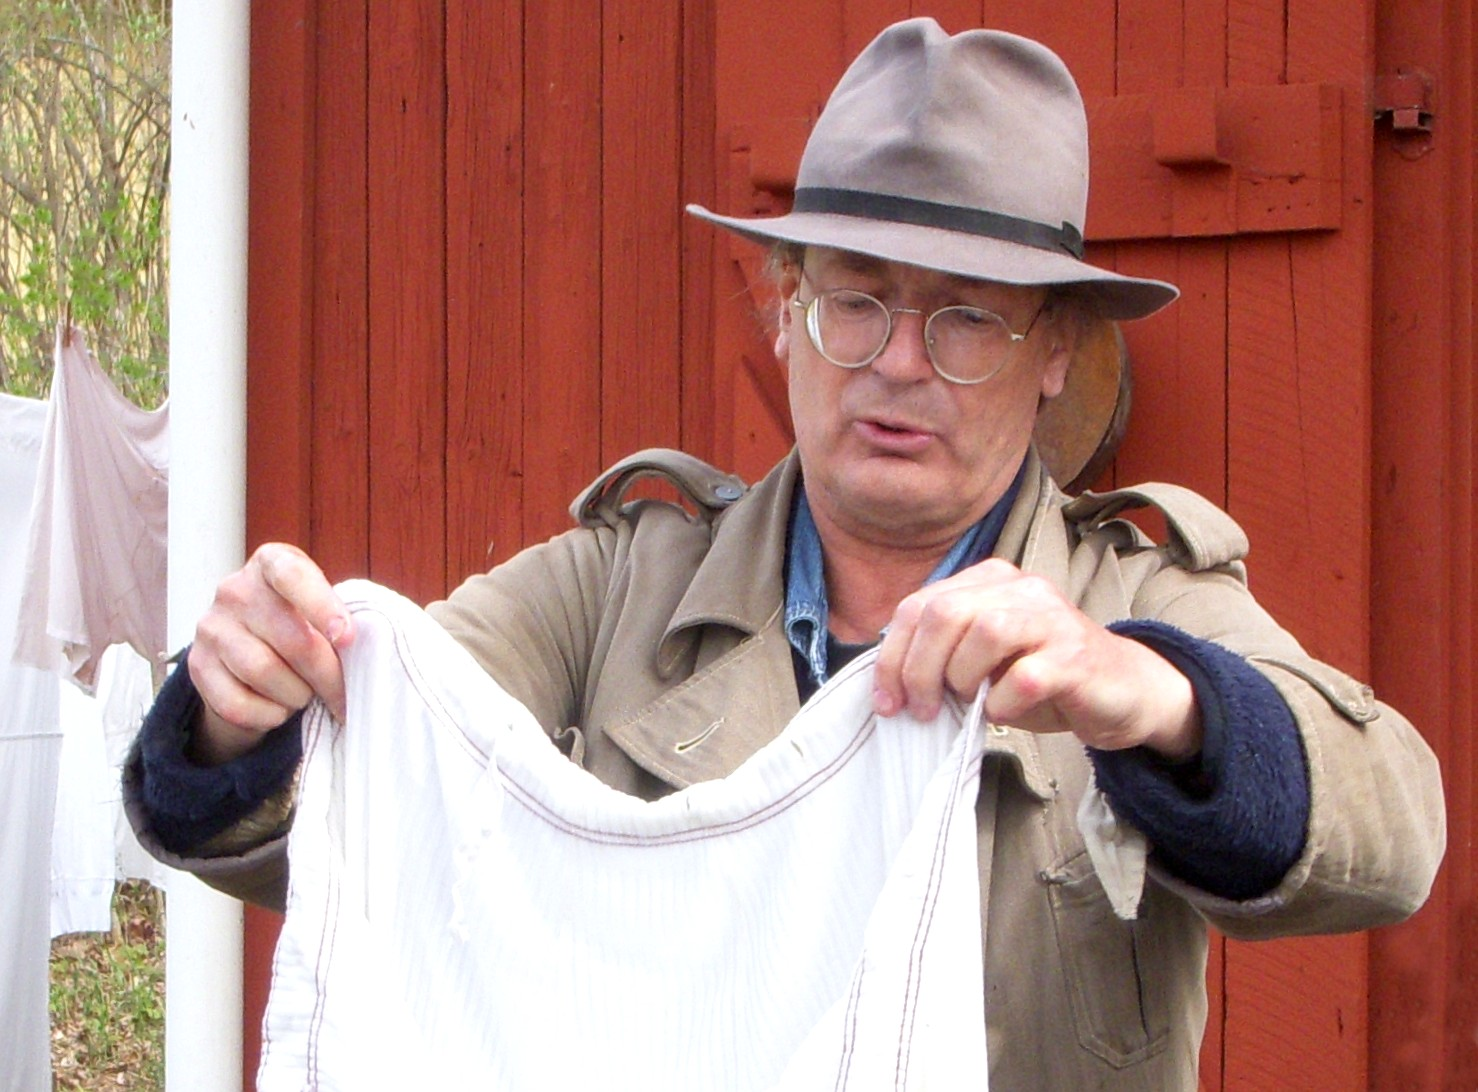 Image of Olle Magnusson from Wikidata